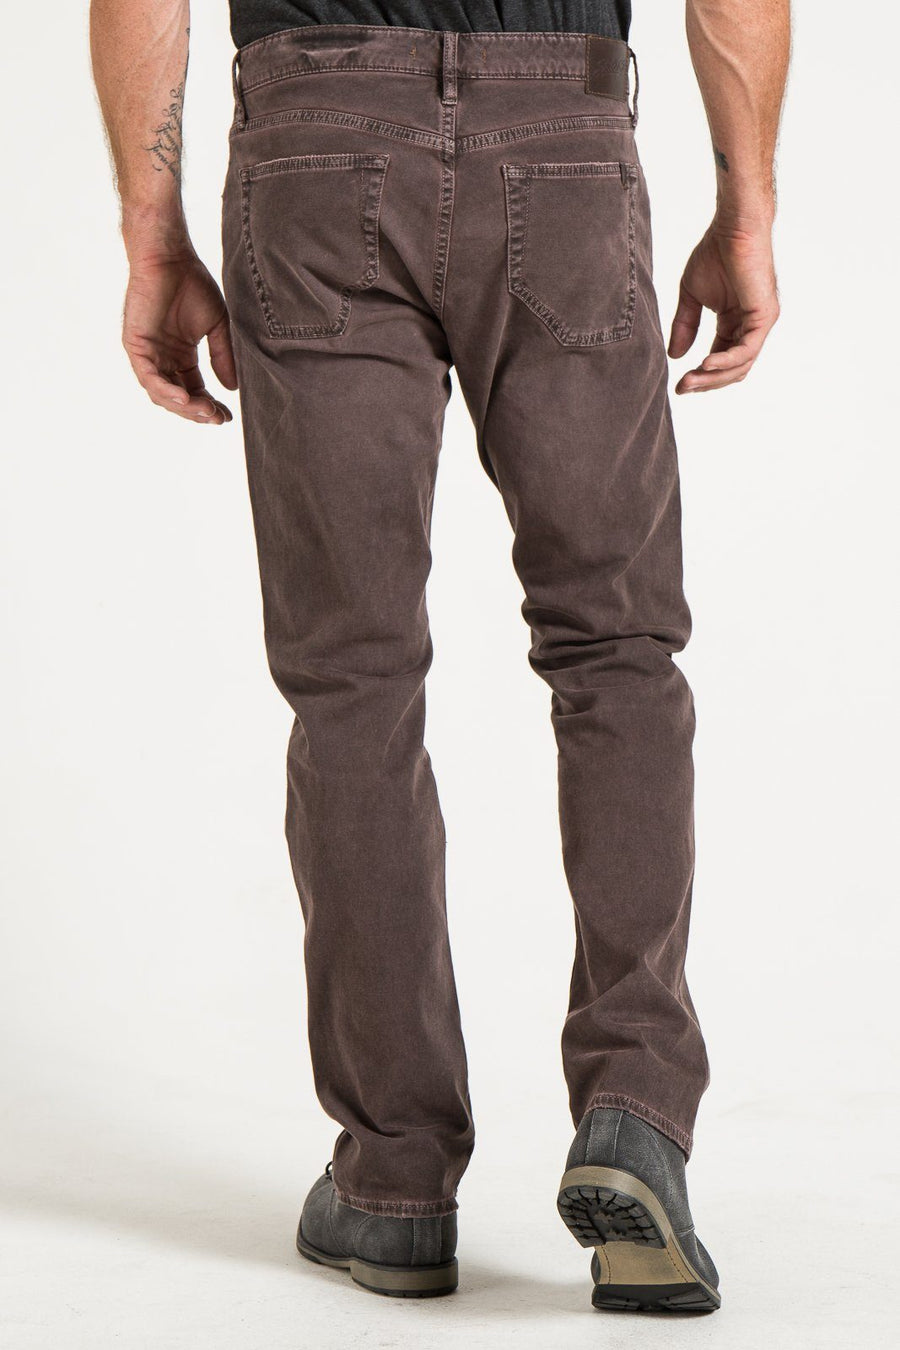 BARFLY SLIM IN EARTH STRETCH TWILL